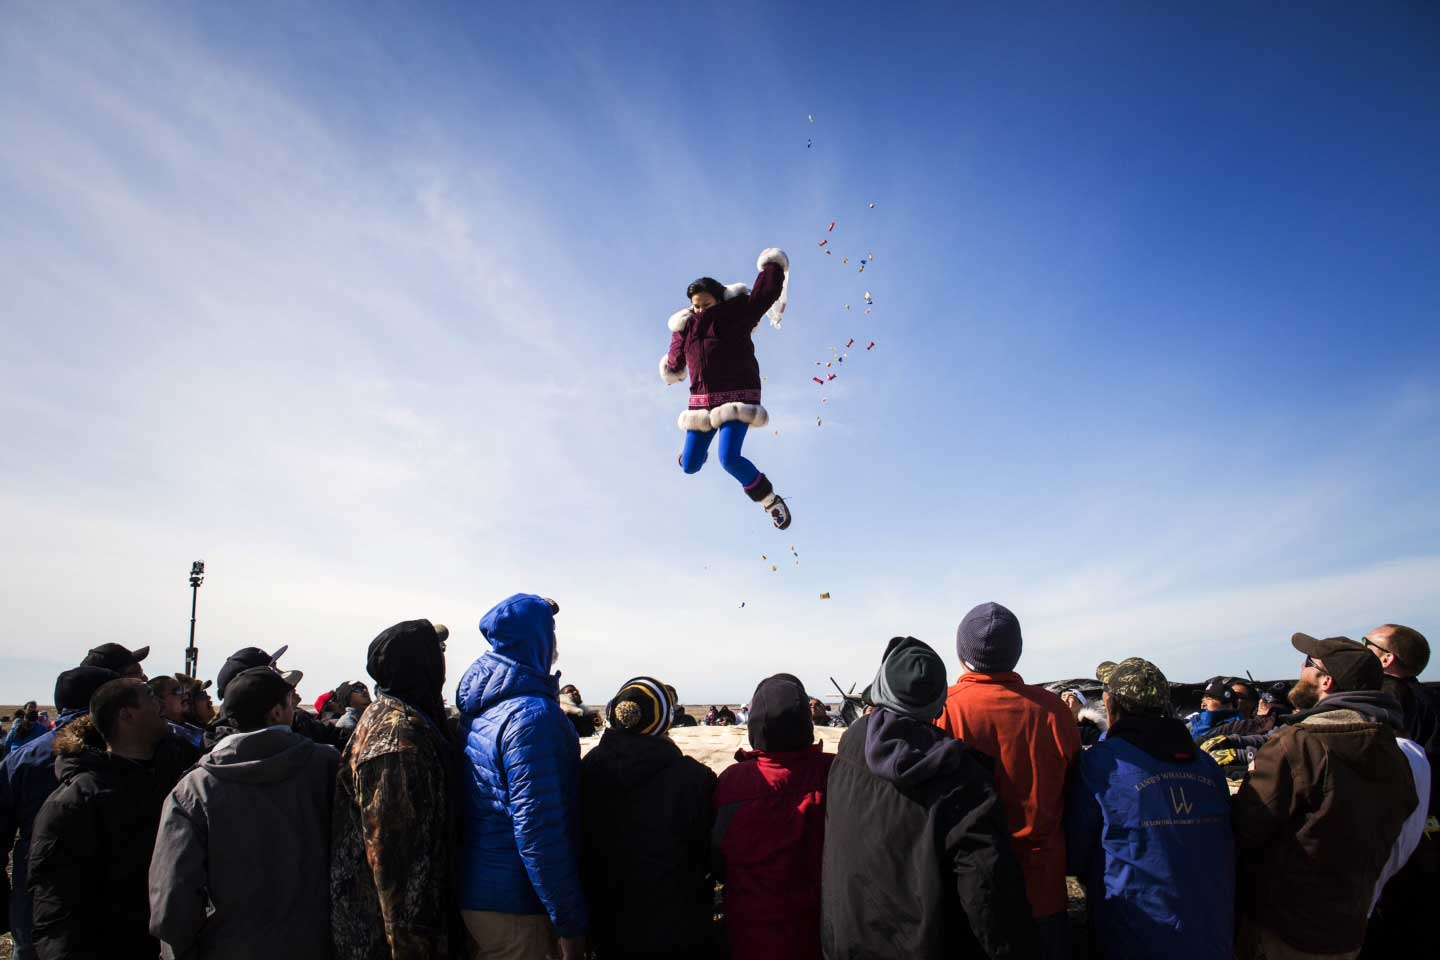 The traditional blanket toss at the annual whaling feast in Point Hope, Alaska on June 16, 2015.